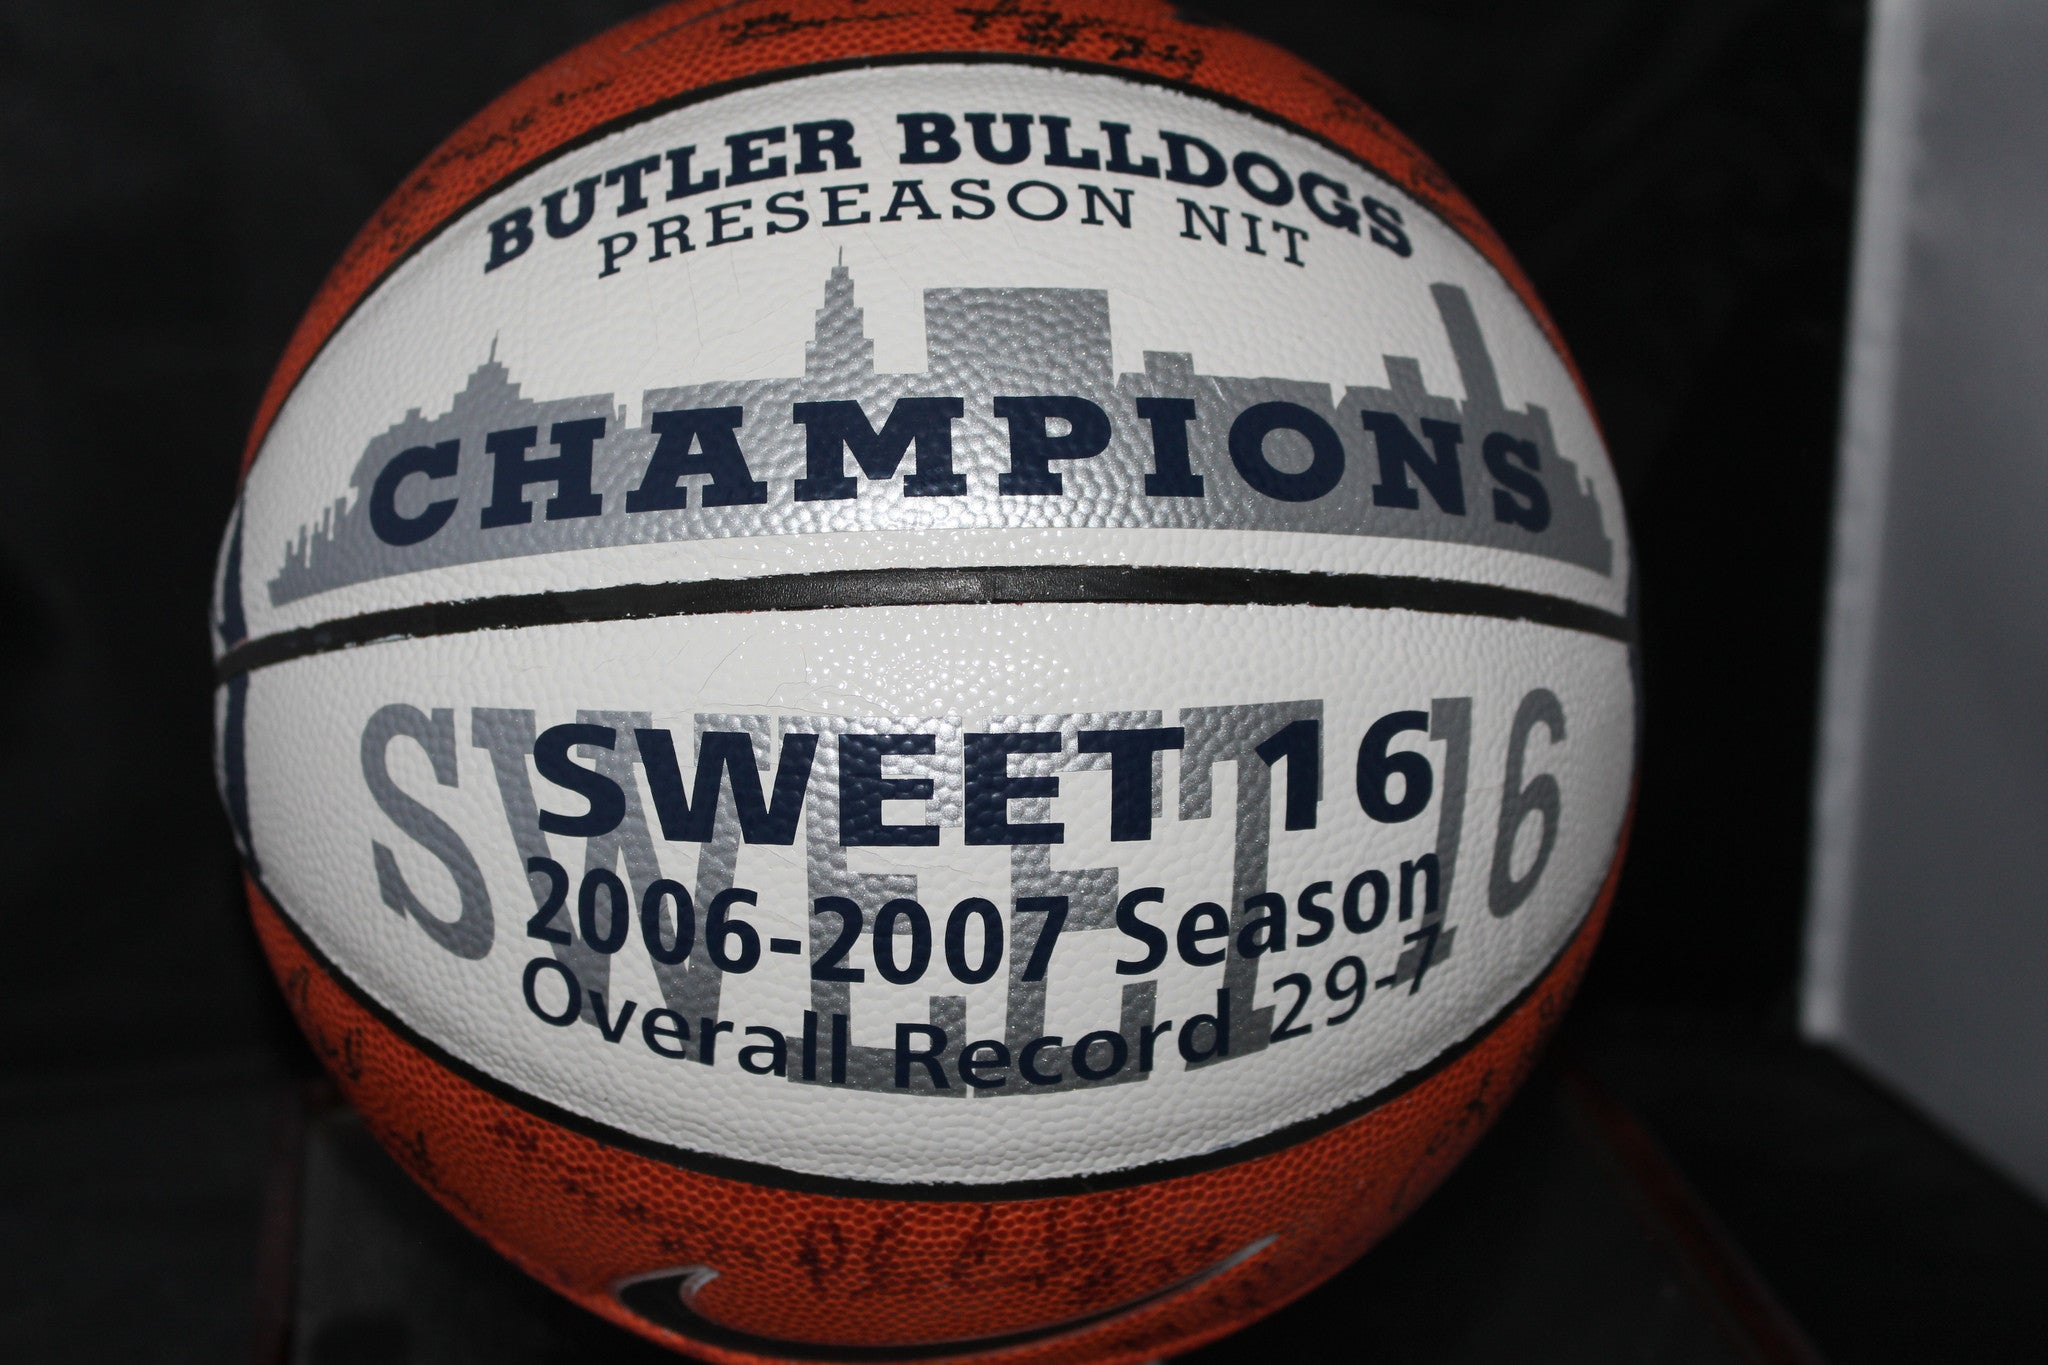 2006-07 Butler University Autographed Basketball w/ Display Case - Vintage Indy Sports